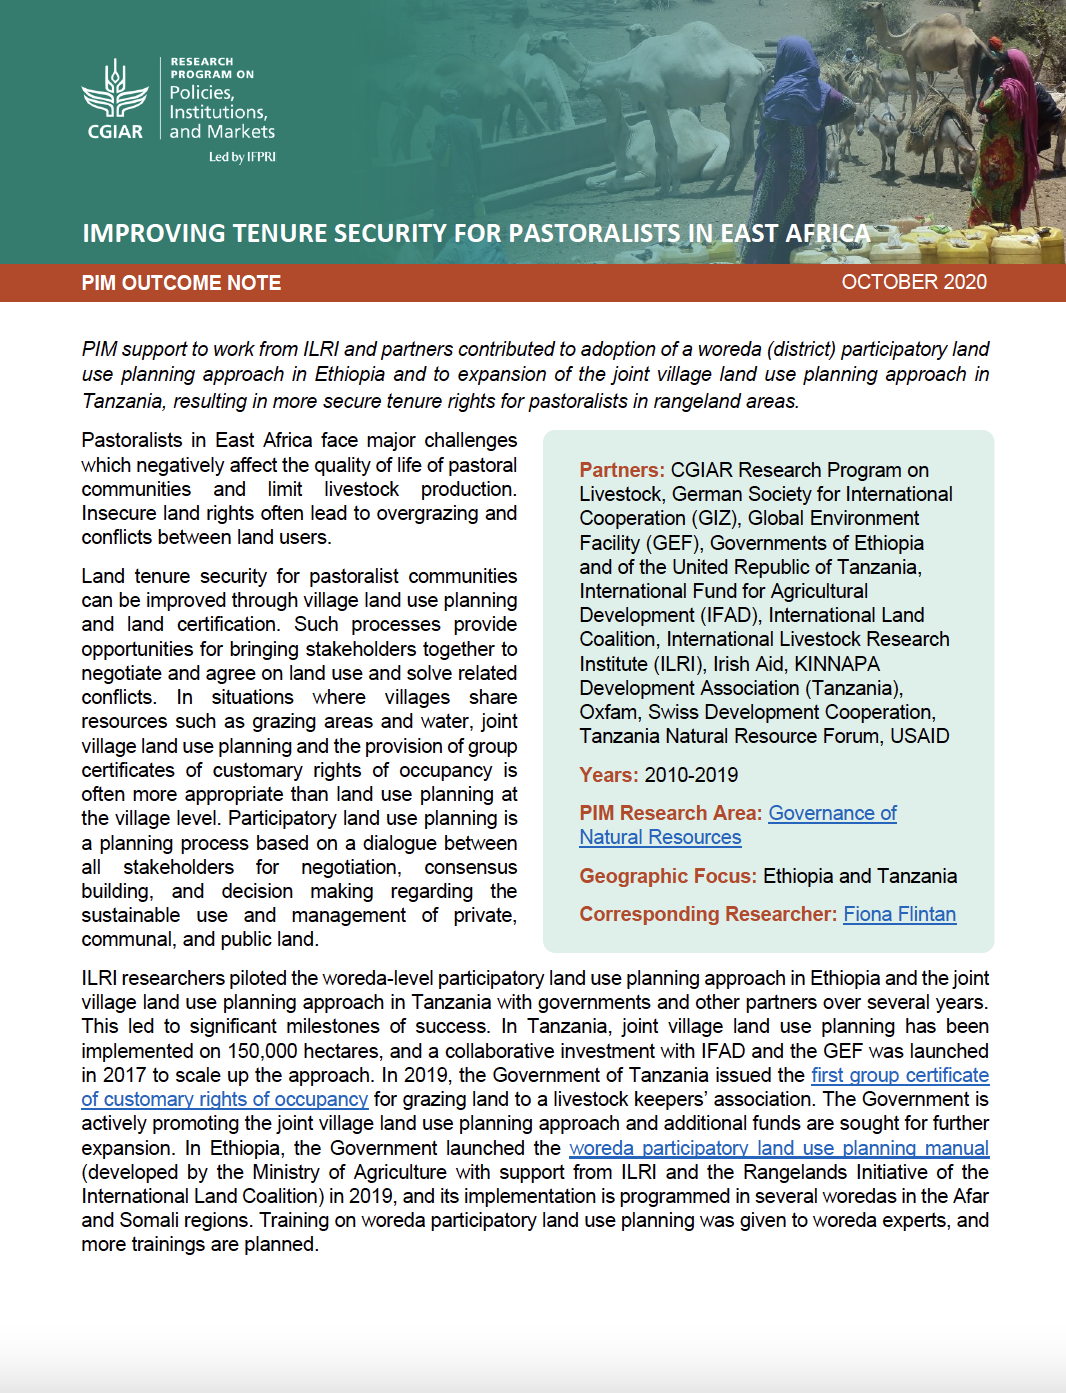 Improving tenure security for pastoralists in East Africa